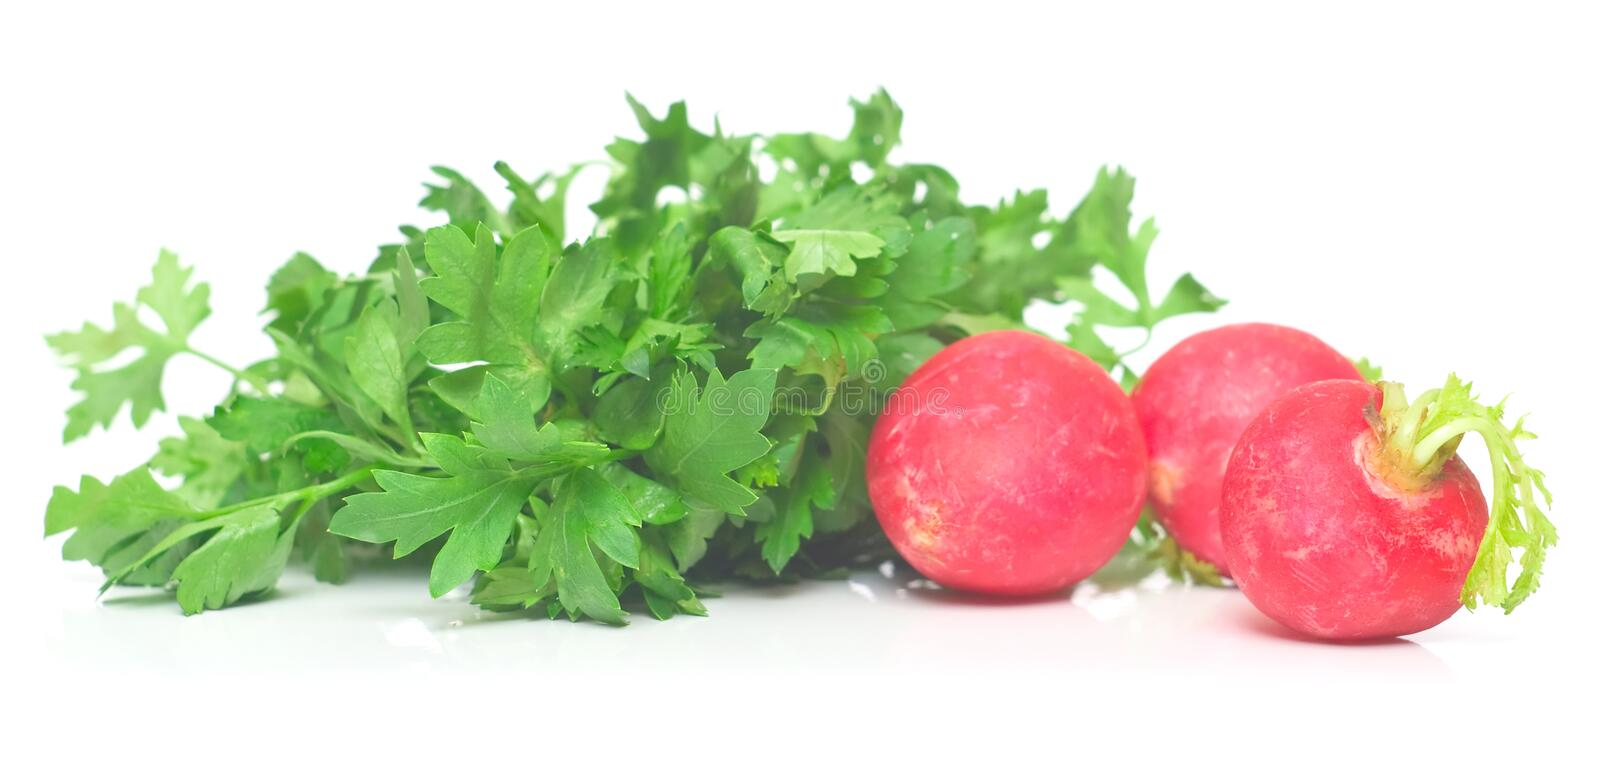 Download Garden radish and parsley stock image. Image of tasty - 5023401